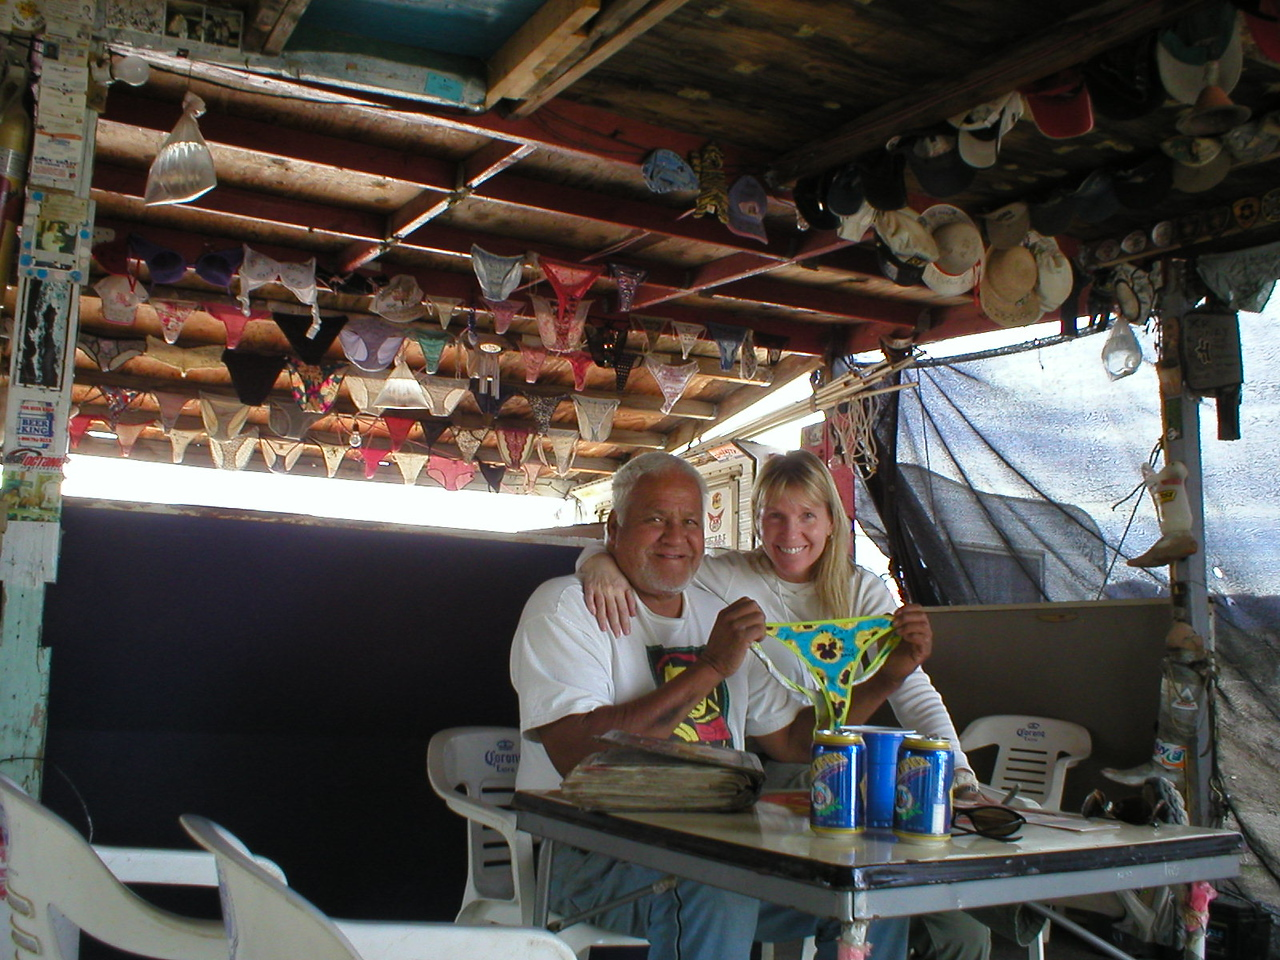 More Baja 1000 fun!<br /> This is Coco at his place in literally the middle of nowhere. Coco lost a leg in an accident years ago and now lives here right on the Baja 1000 race course. Coco serves cold beer and has lots of funny stories and information.